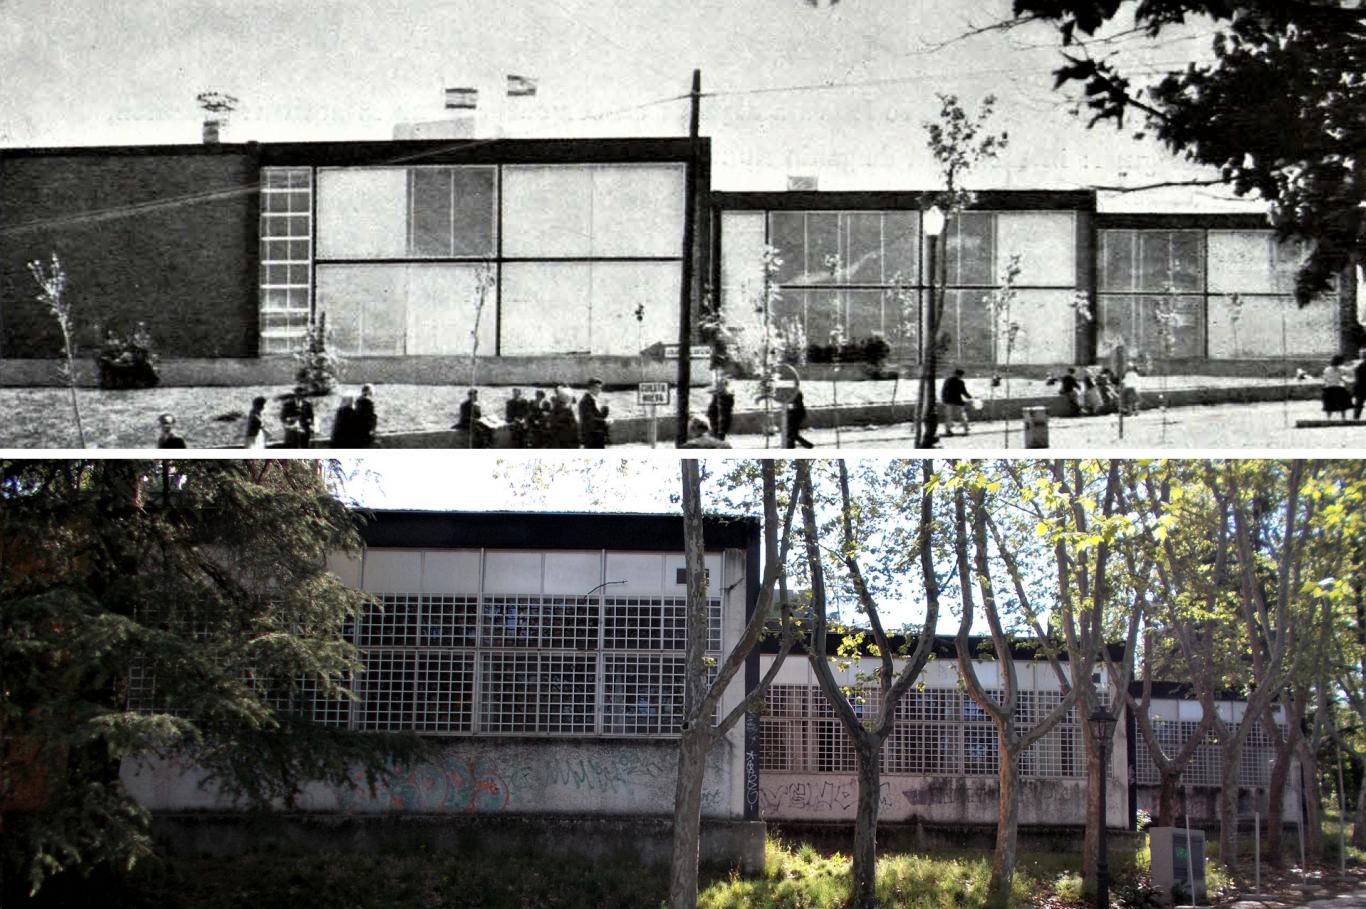 Comparison image of the appearance of the rear facades of the Pavilion of the National Housing Institute in 1959